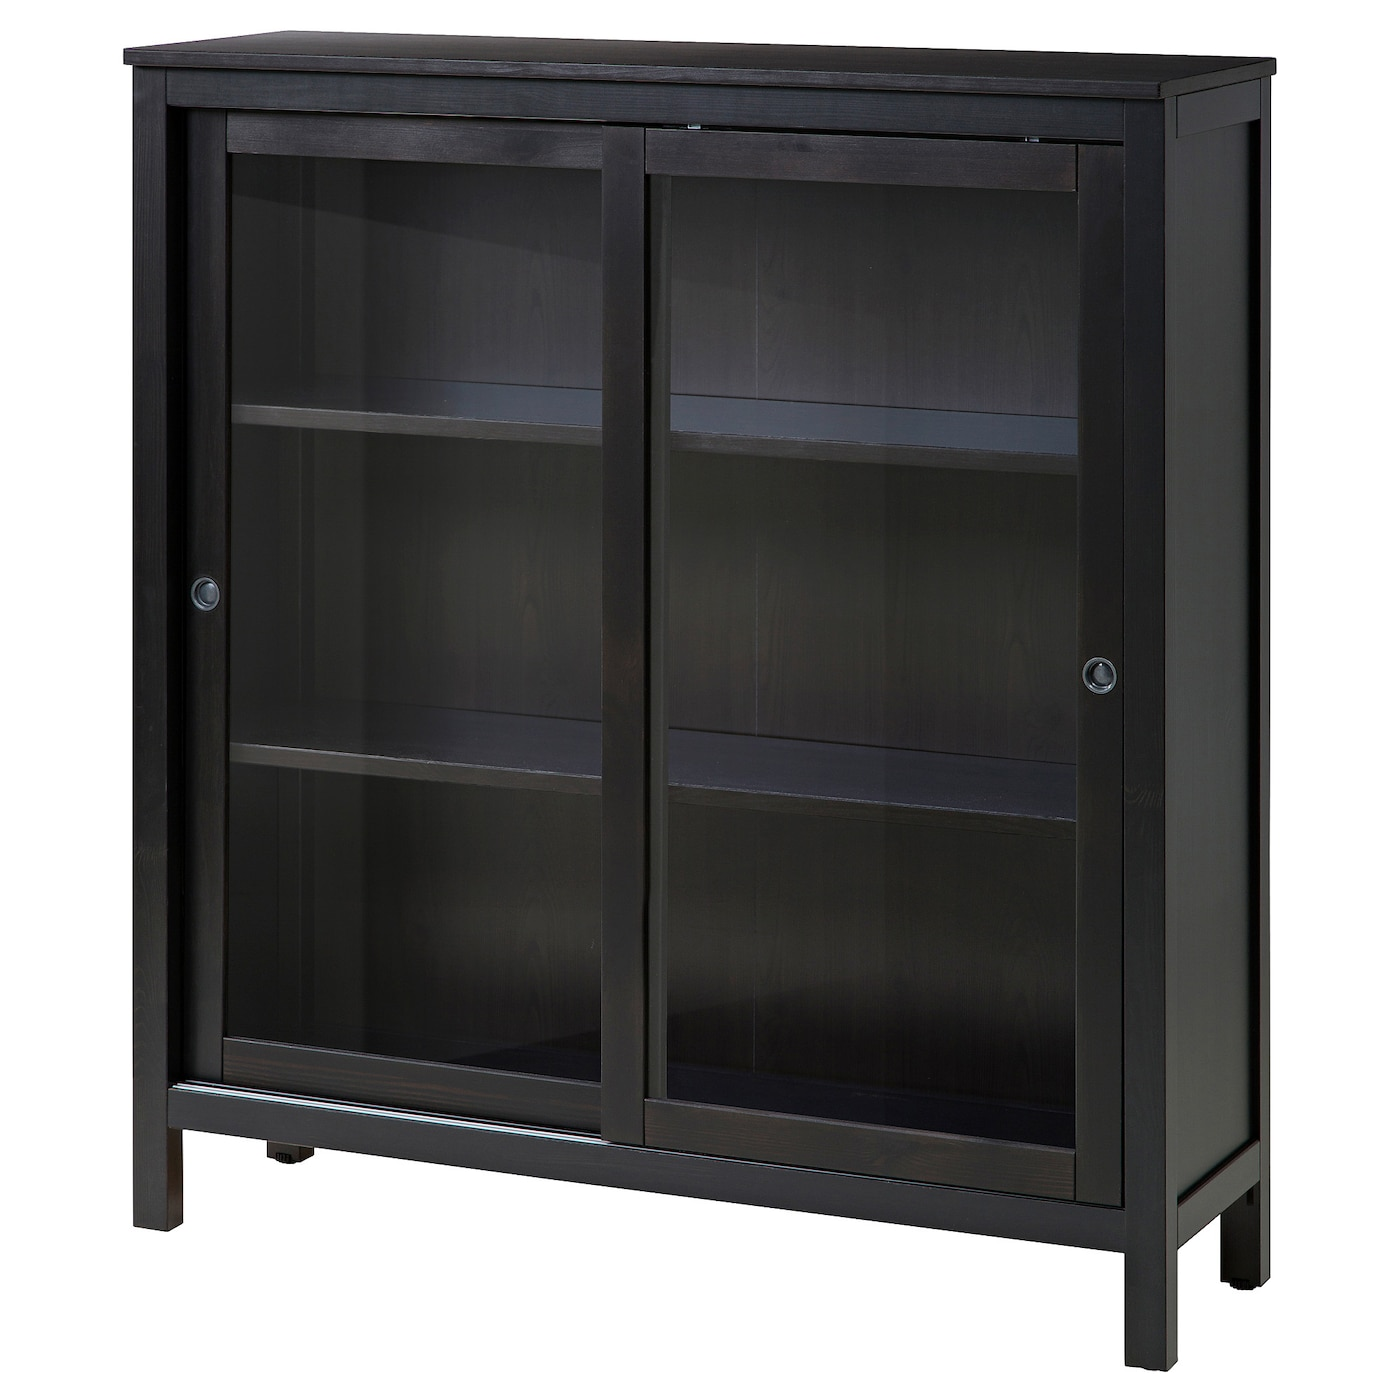 Storage Cabinets Storage Cupboards Ikea Ireland # Meuble Salon Ikea